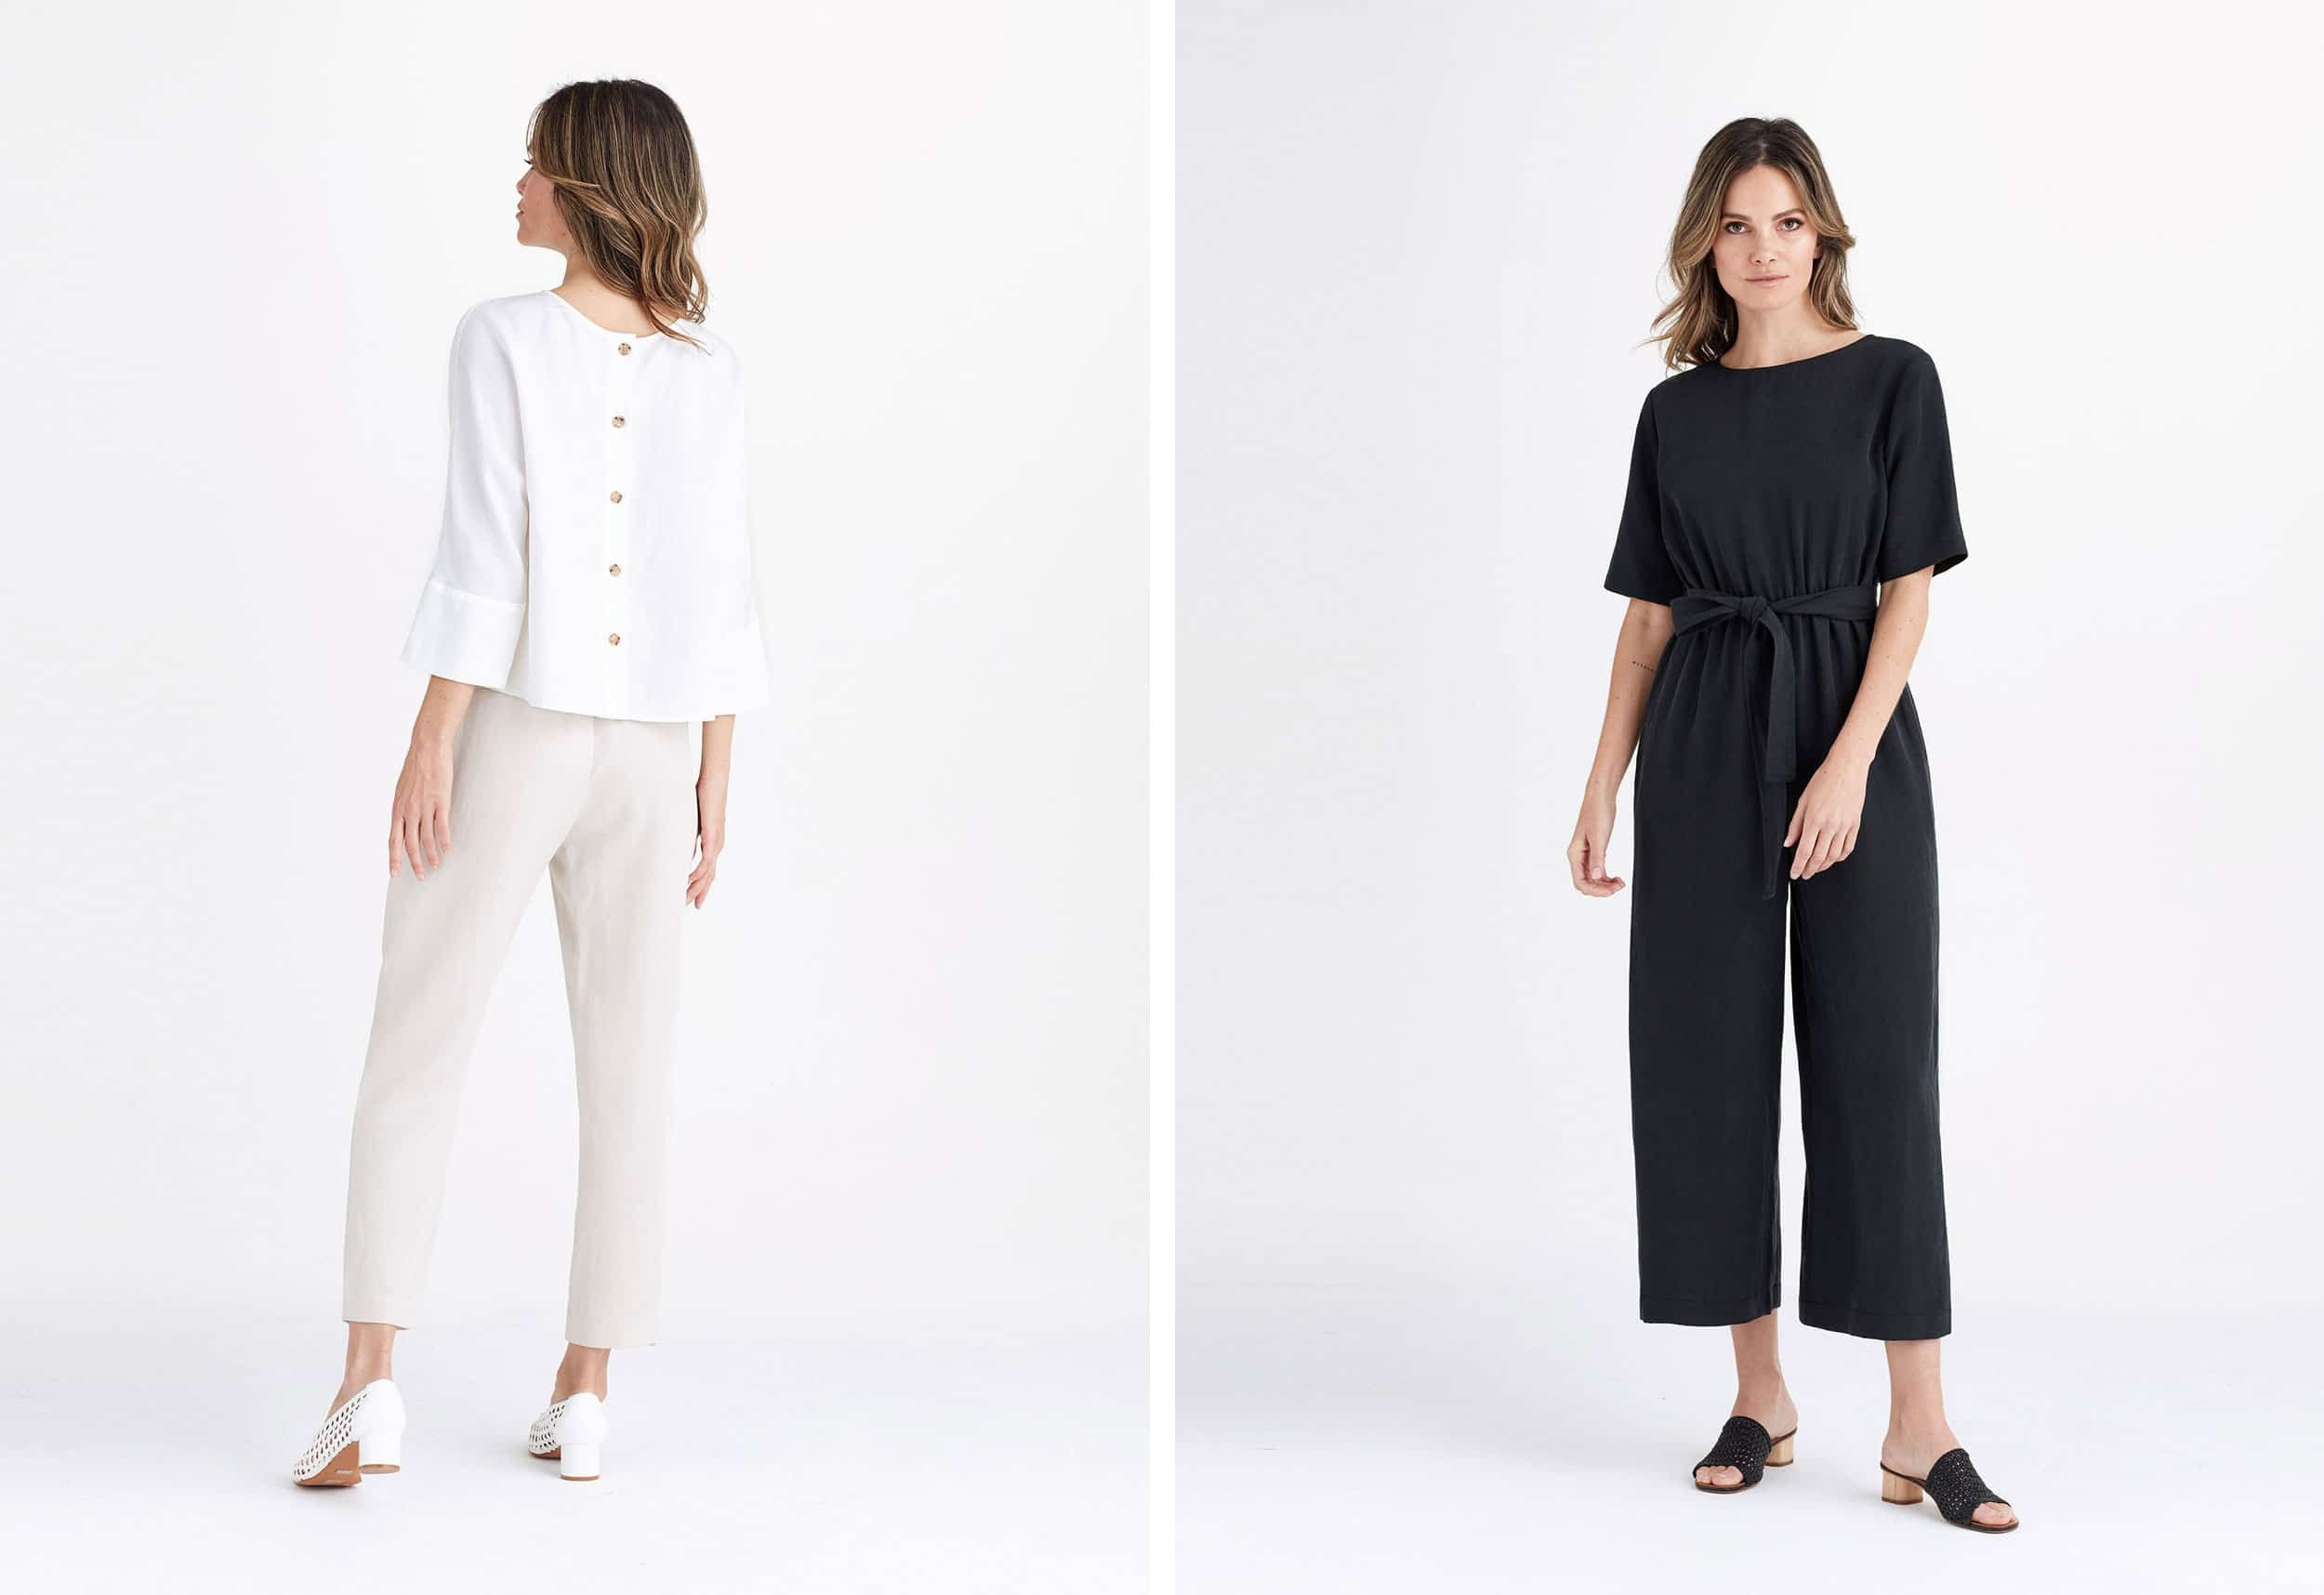 12 Sustainable Fashion Brands to Try If You Love Clothes (But Also the Earth)